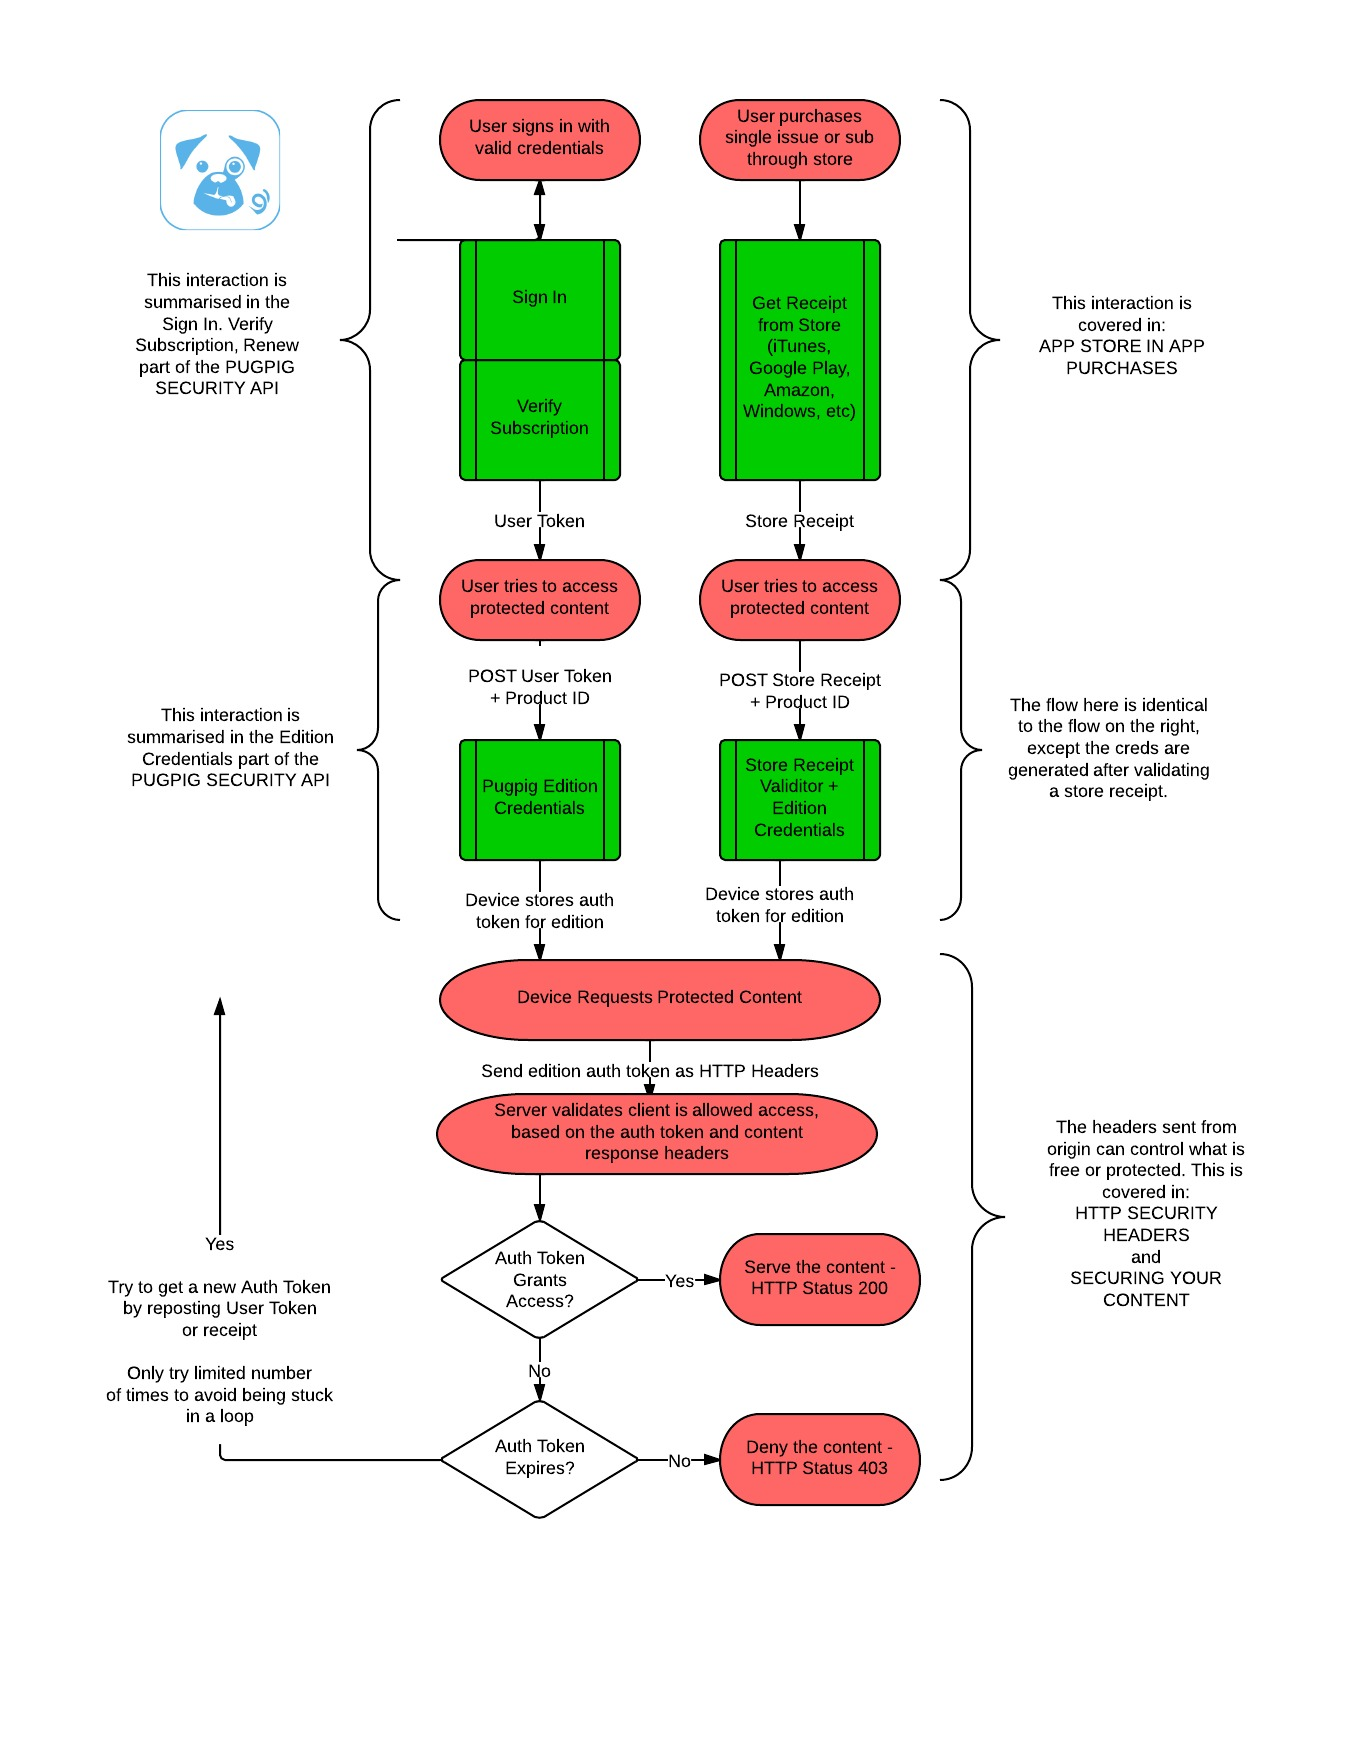 Security api security flow chart and documentation overview an external system or integrating with the vendor ecosystem store such as itunes google play amazon and so on for example step the diagram indicates nvjuhfo Images